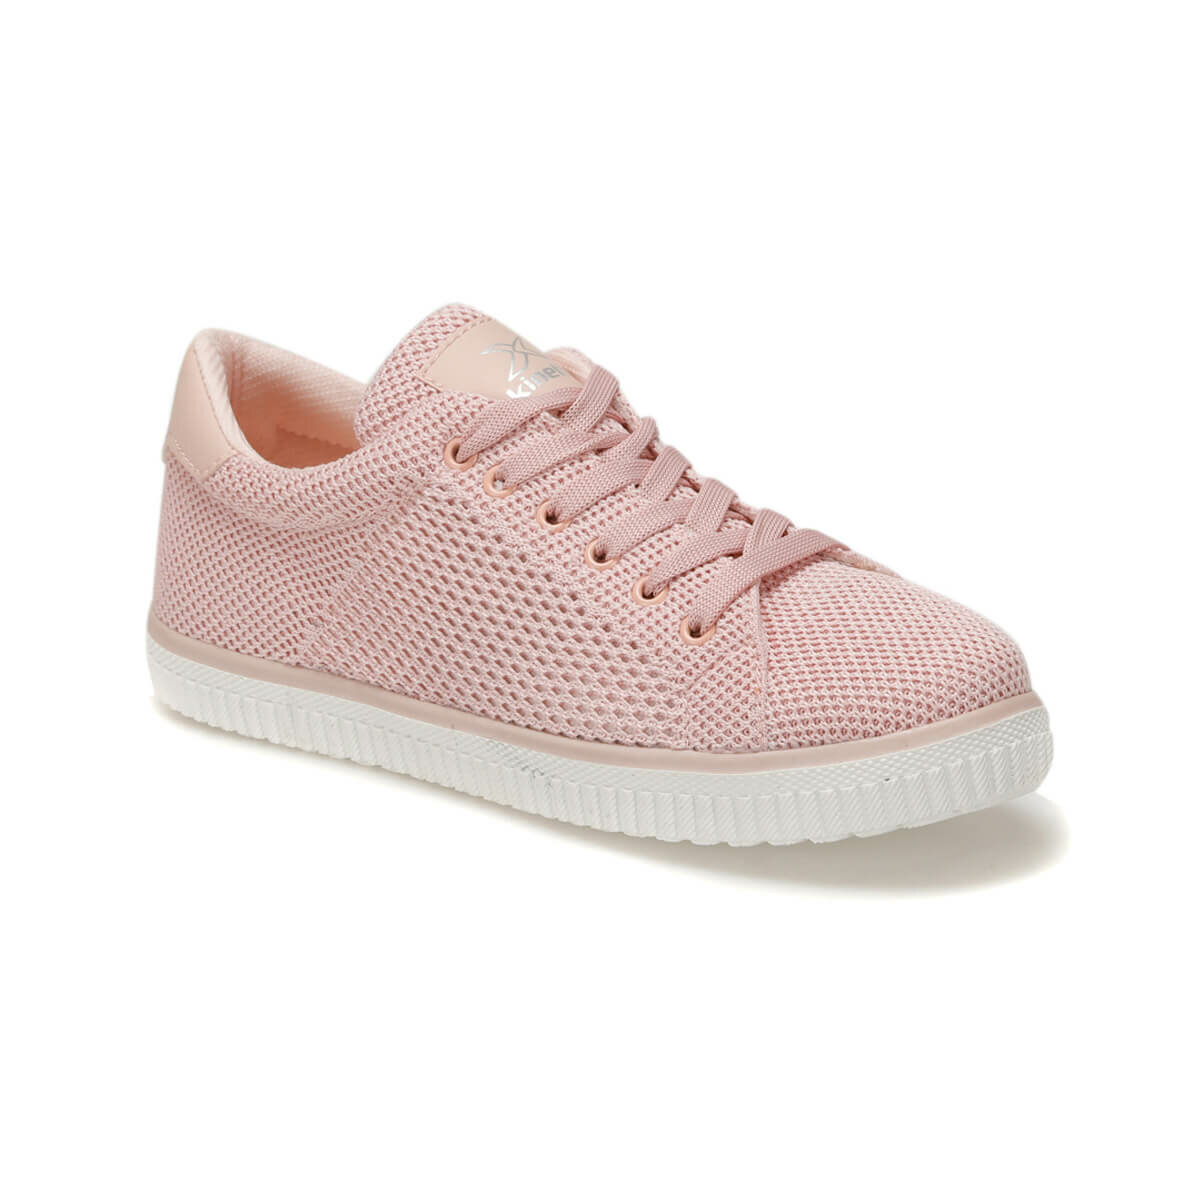 FLO MILAN Powder Women 'S Sneaker Shoes KINETIX